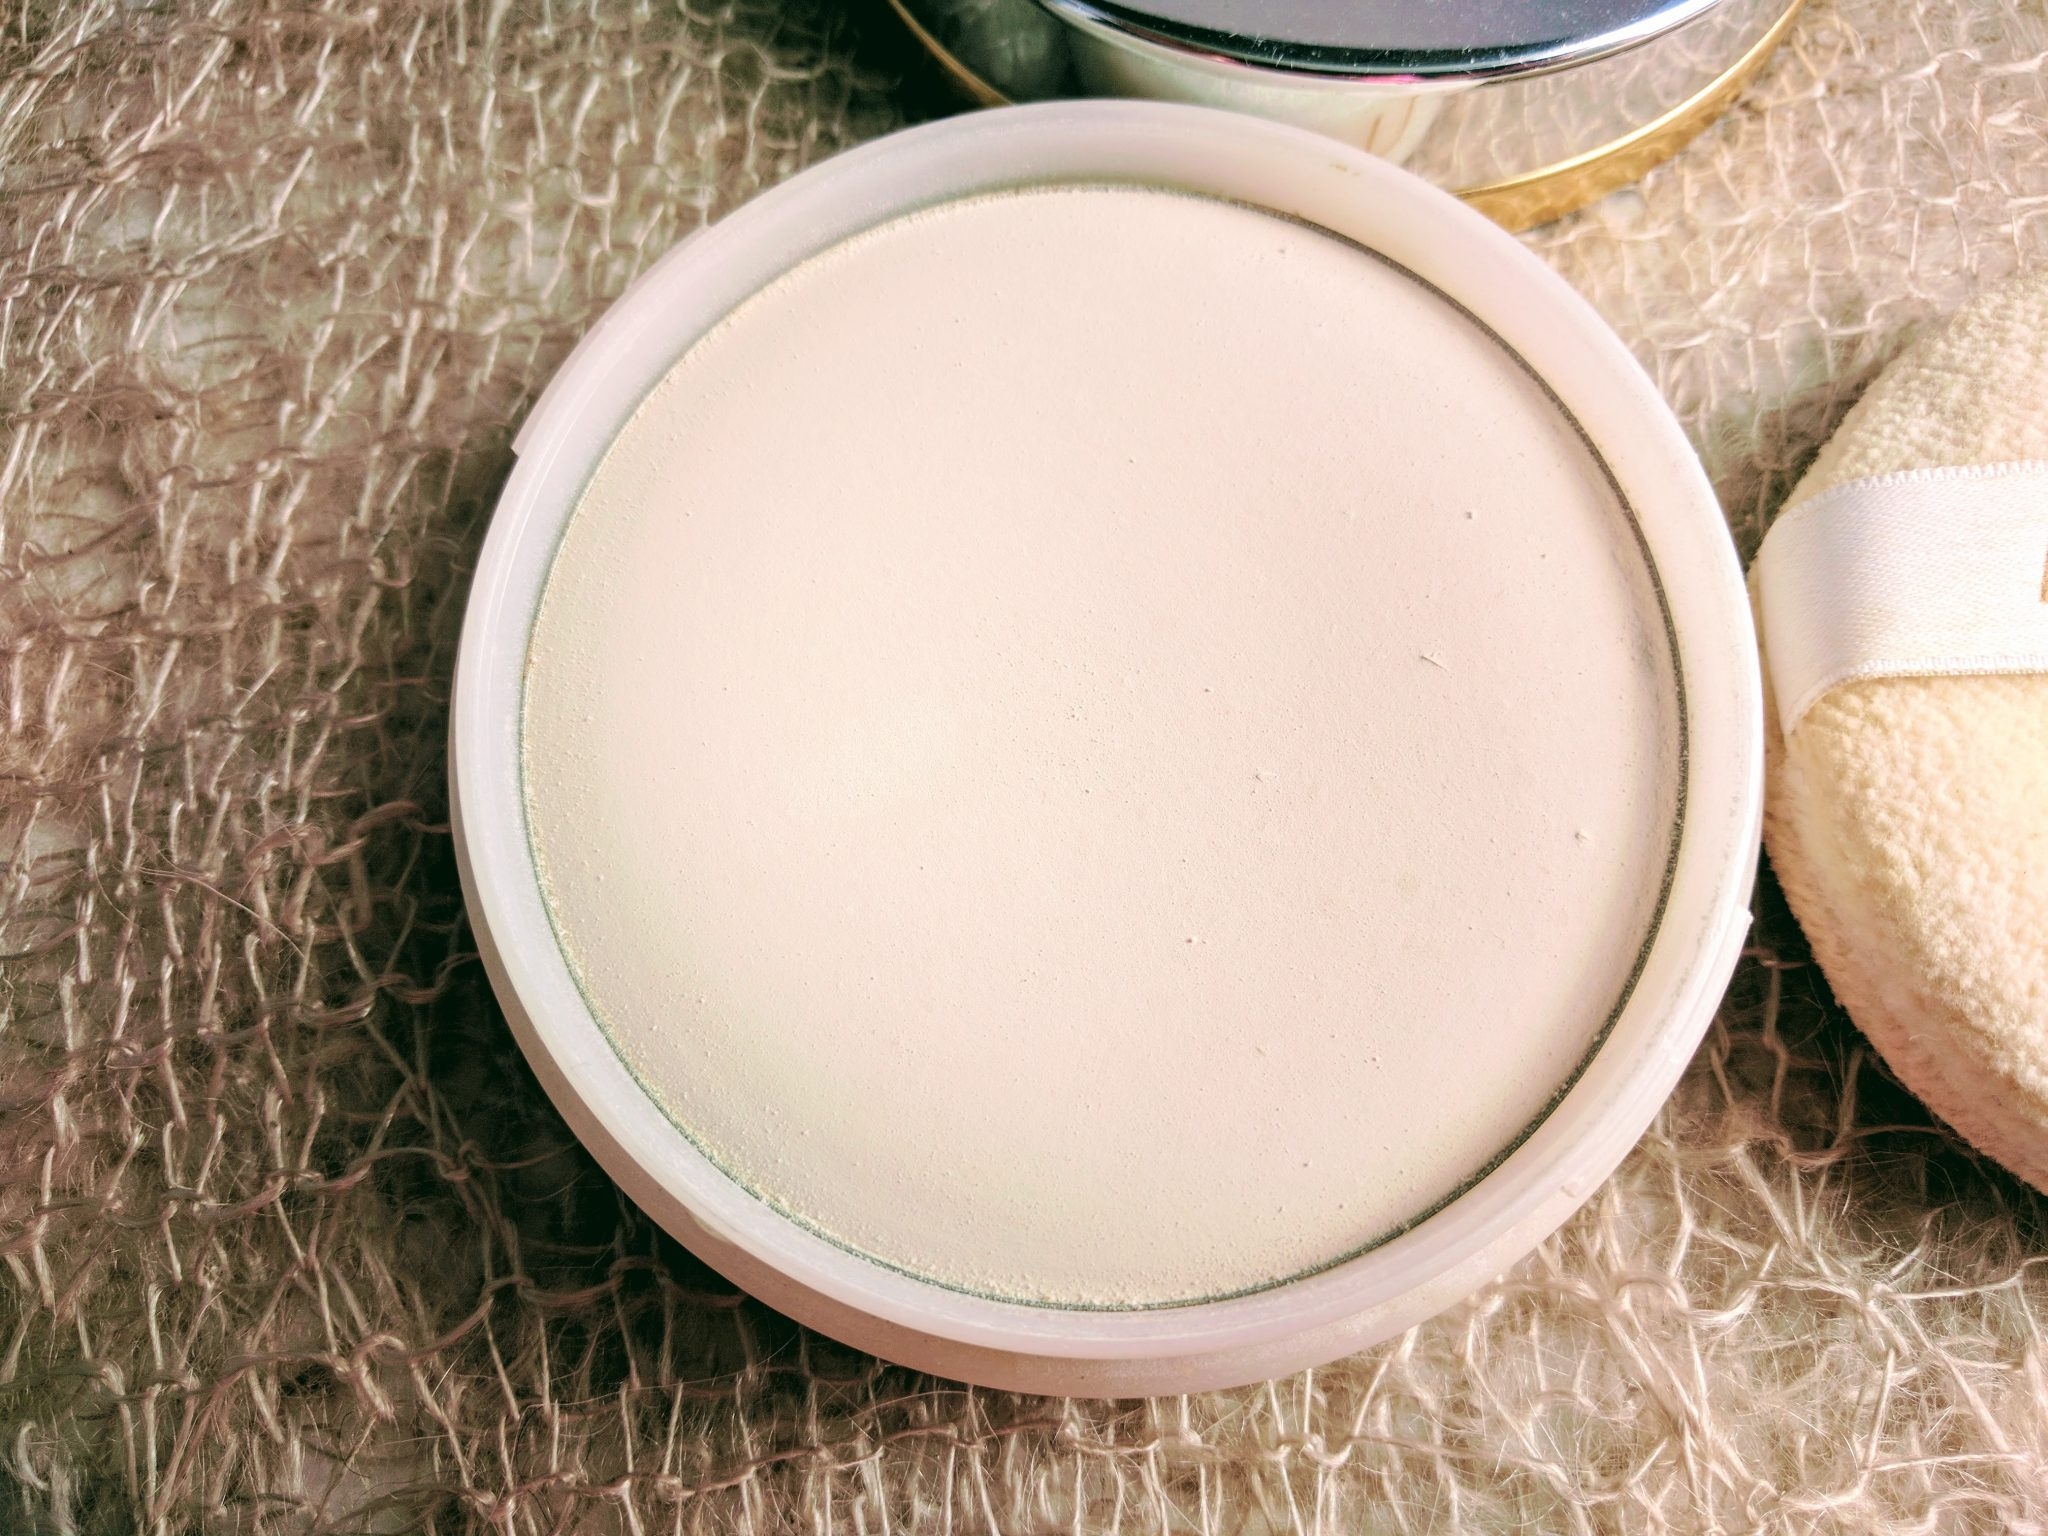 Chanel Allure Tender body powder